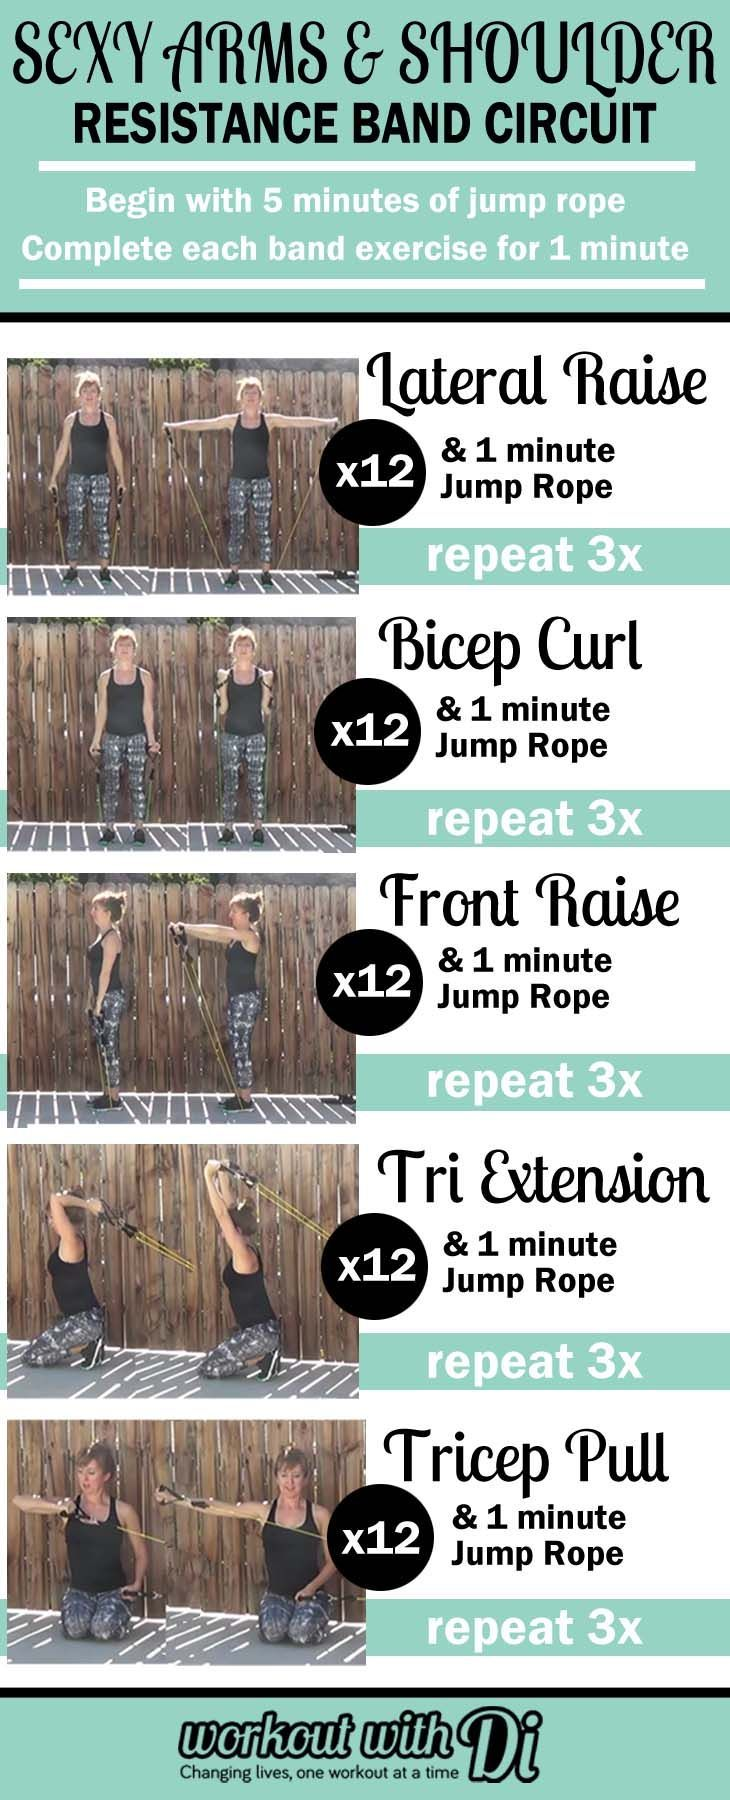 sexy arms and shoulder resistance band circuit workout